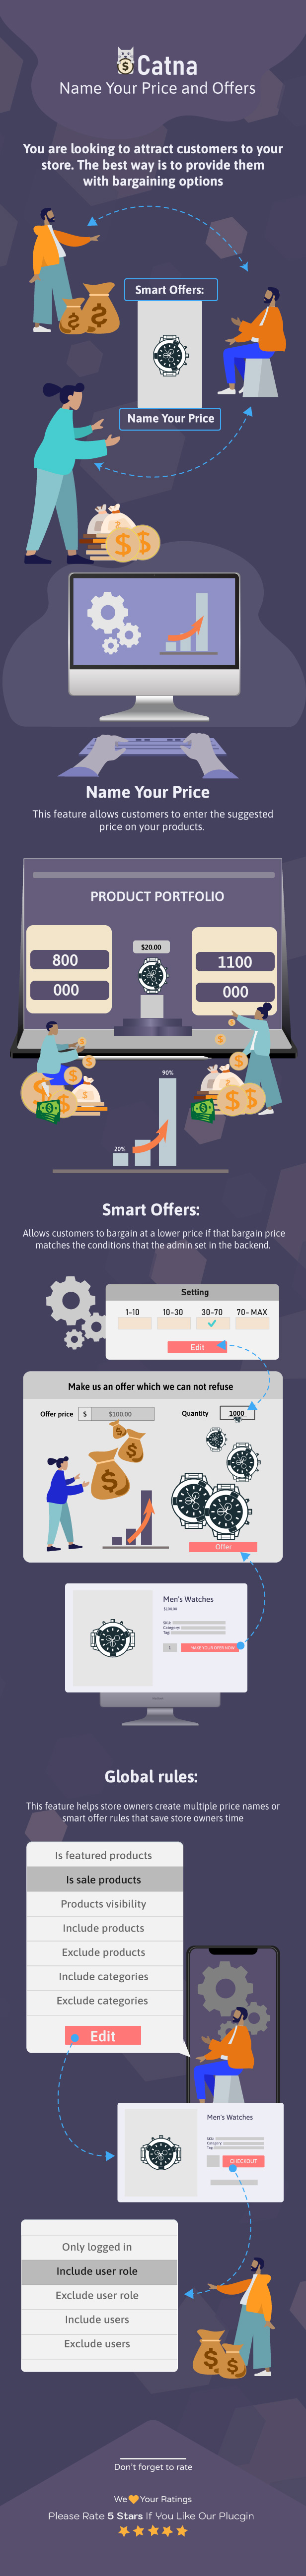 Catna - WooCommerce Name Your Price and Offers